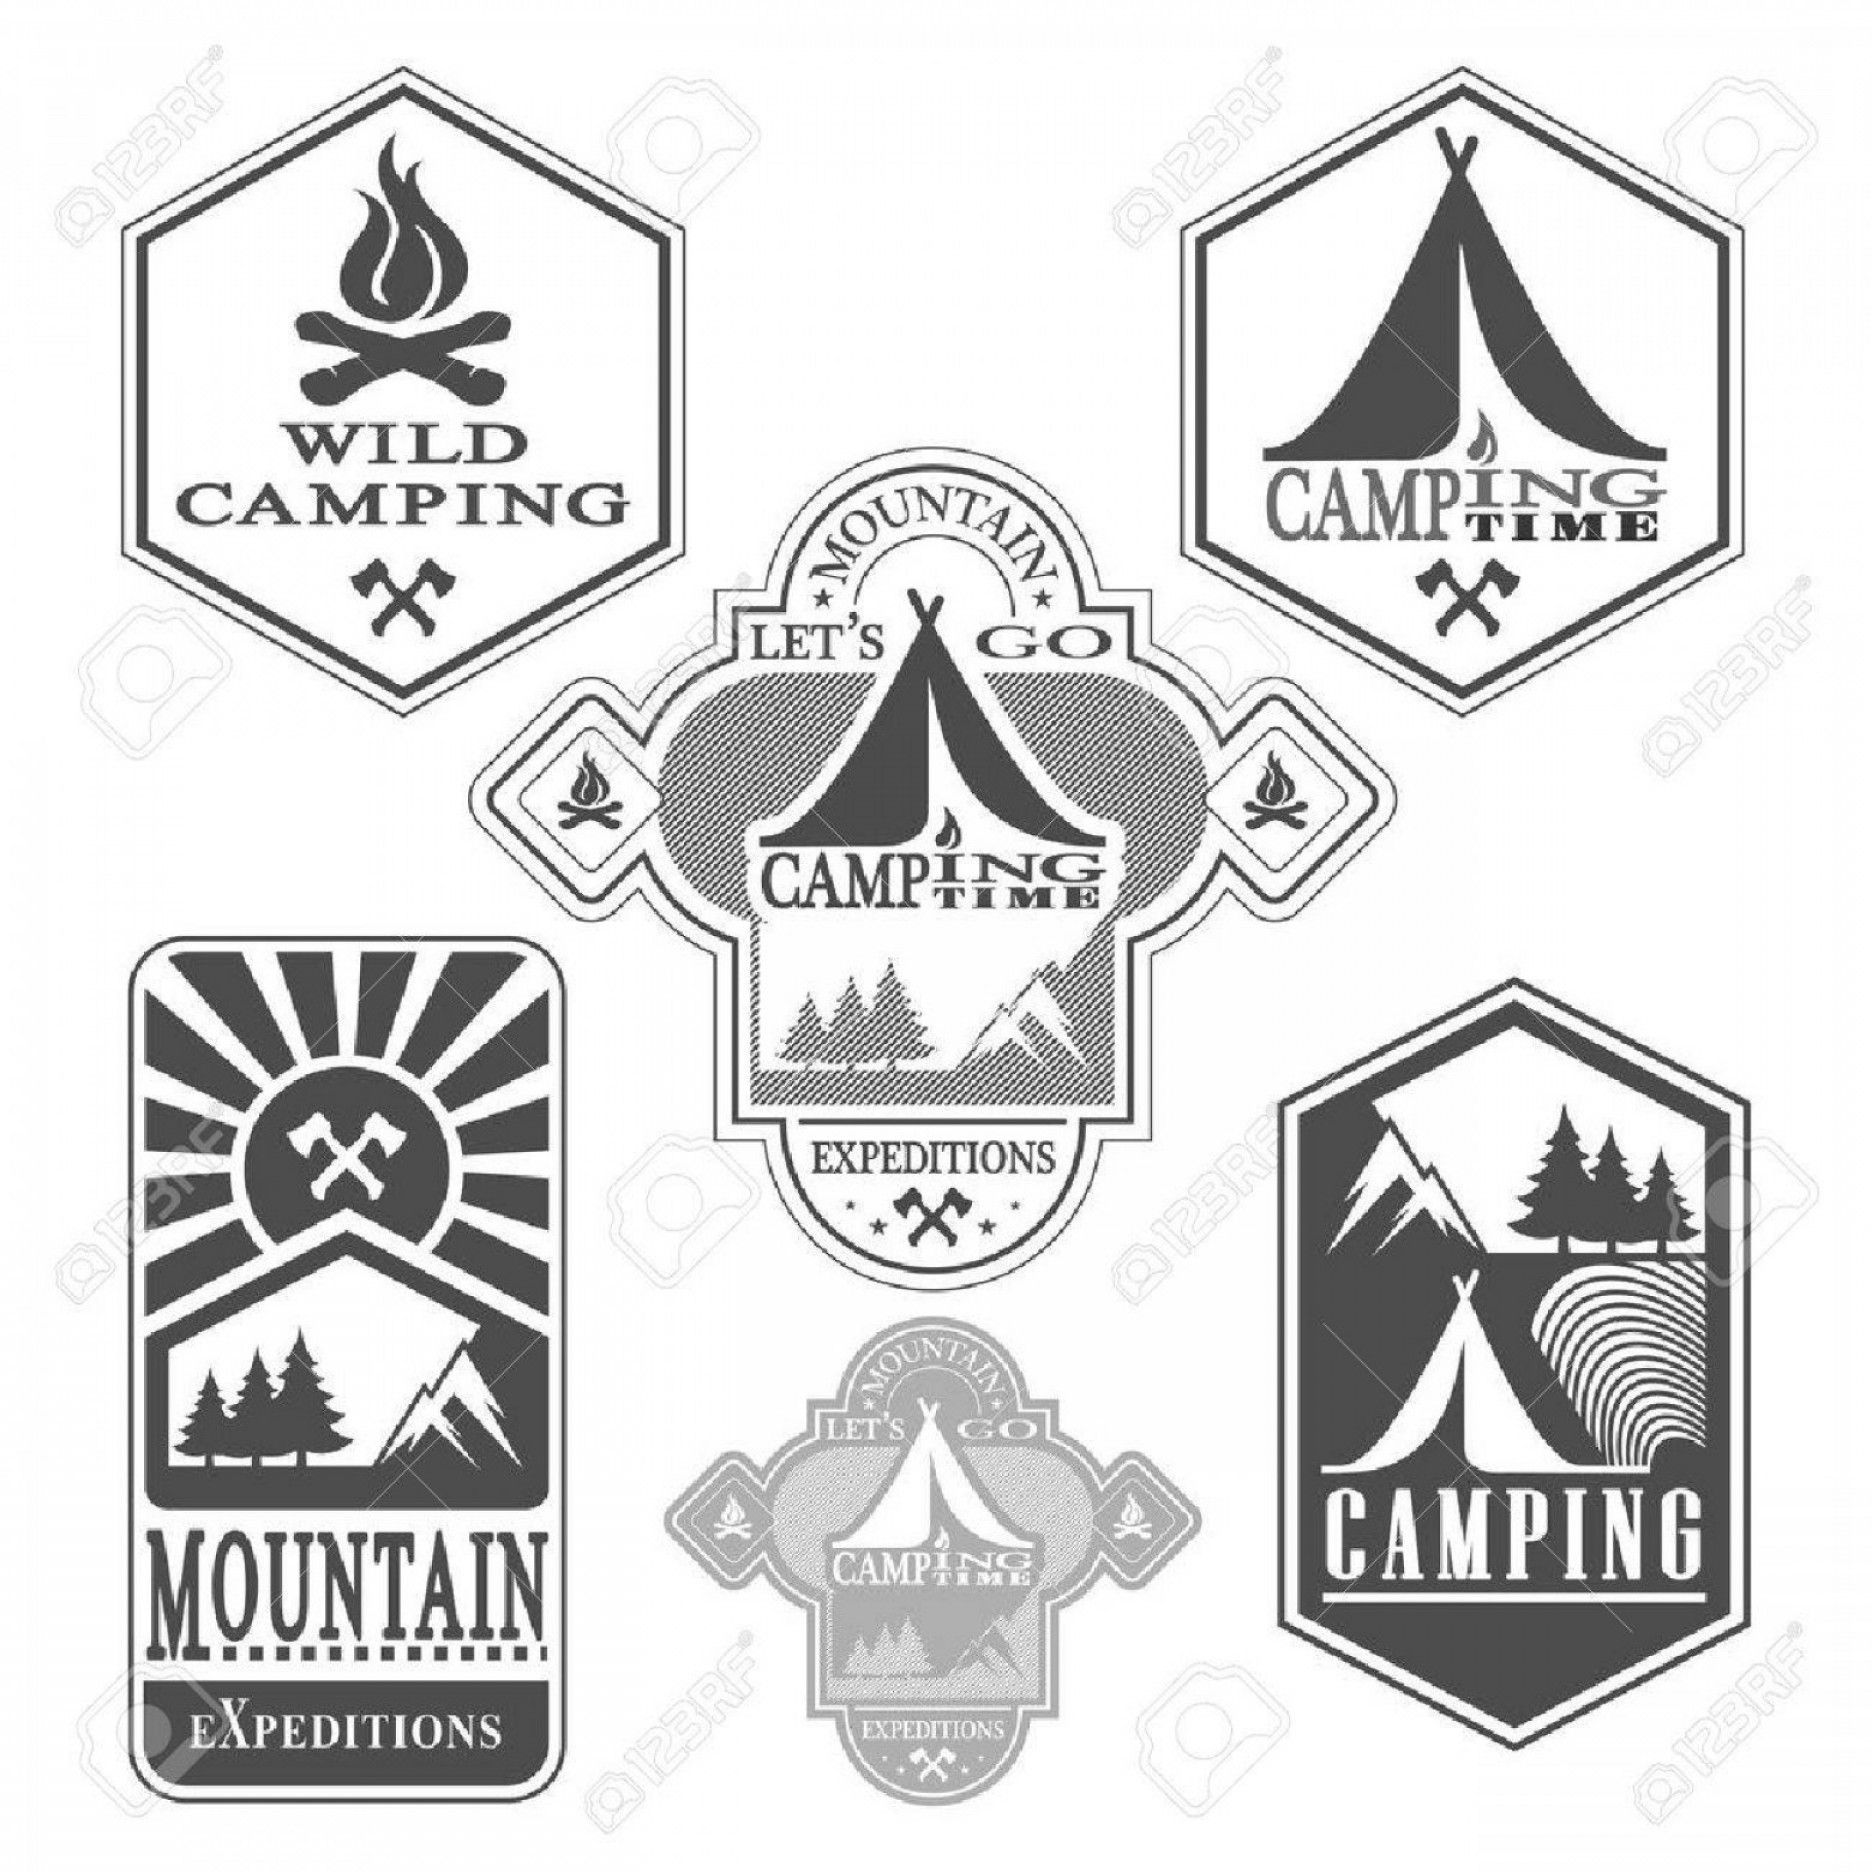 boy scout vector graphics - Google Search | TROOP 533 BOY